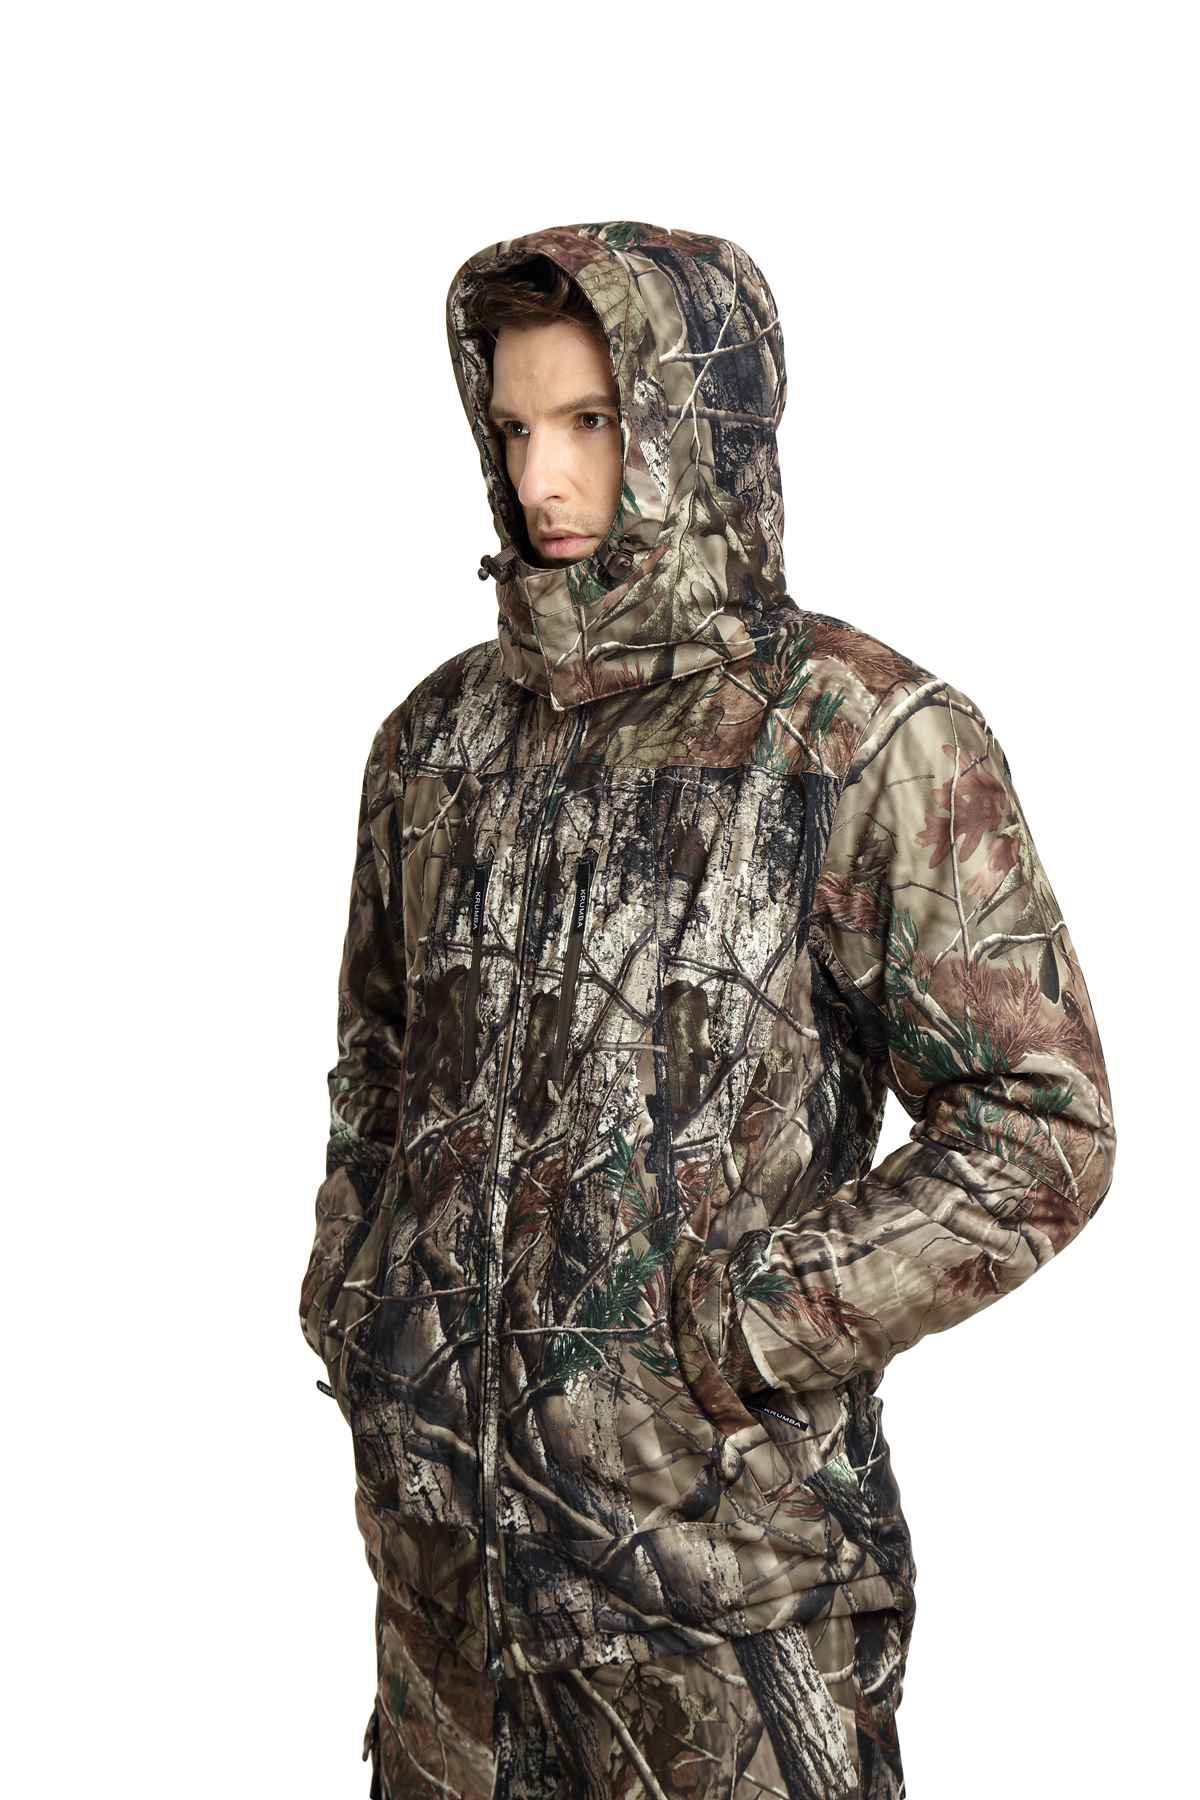 69e72b54e0e36 Krumba Men's Camouflage Hunting Windproof Waterproof Seam Sealed Jacket –  Abundance Outfitters